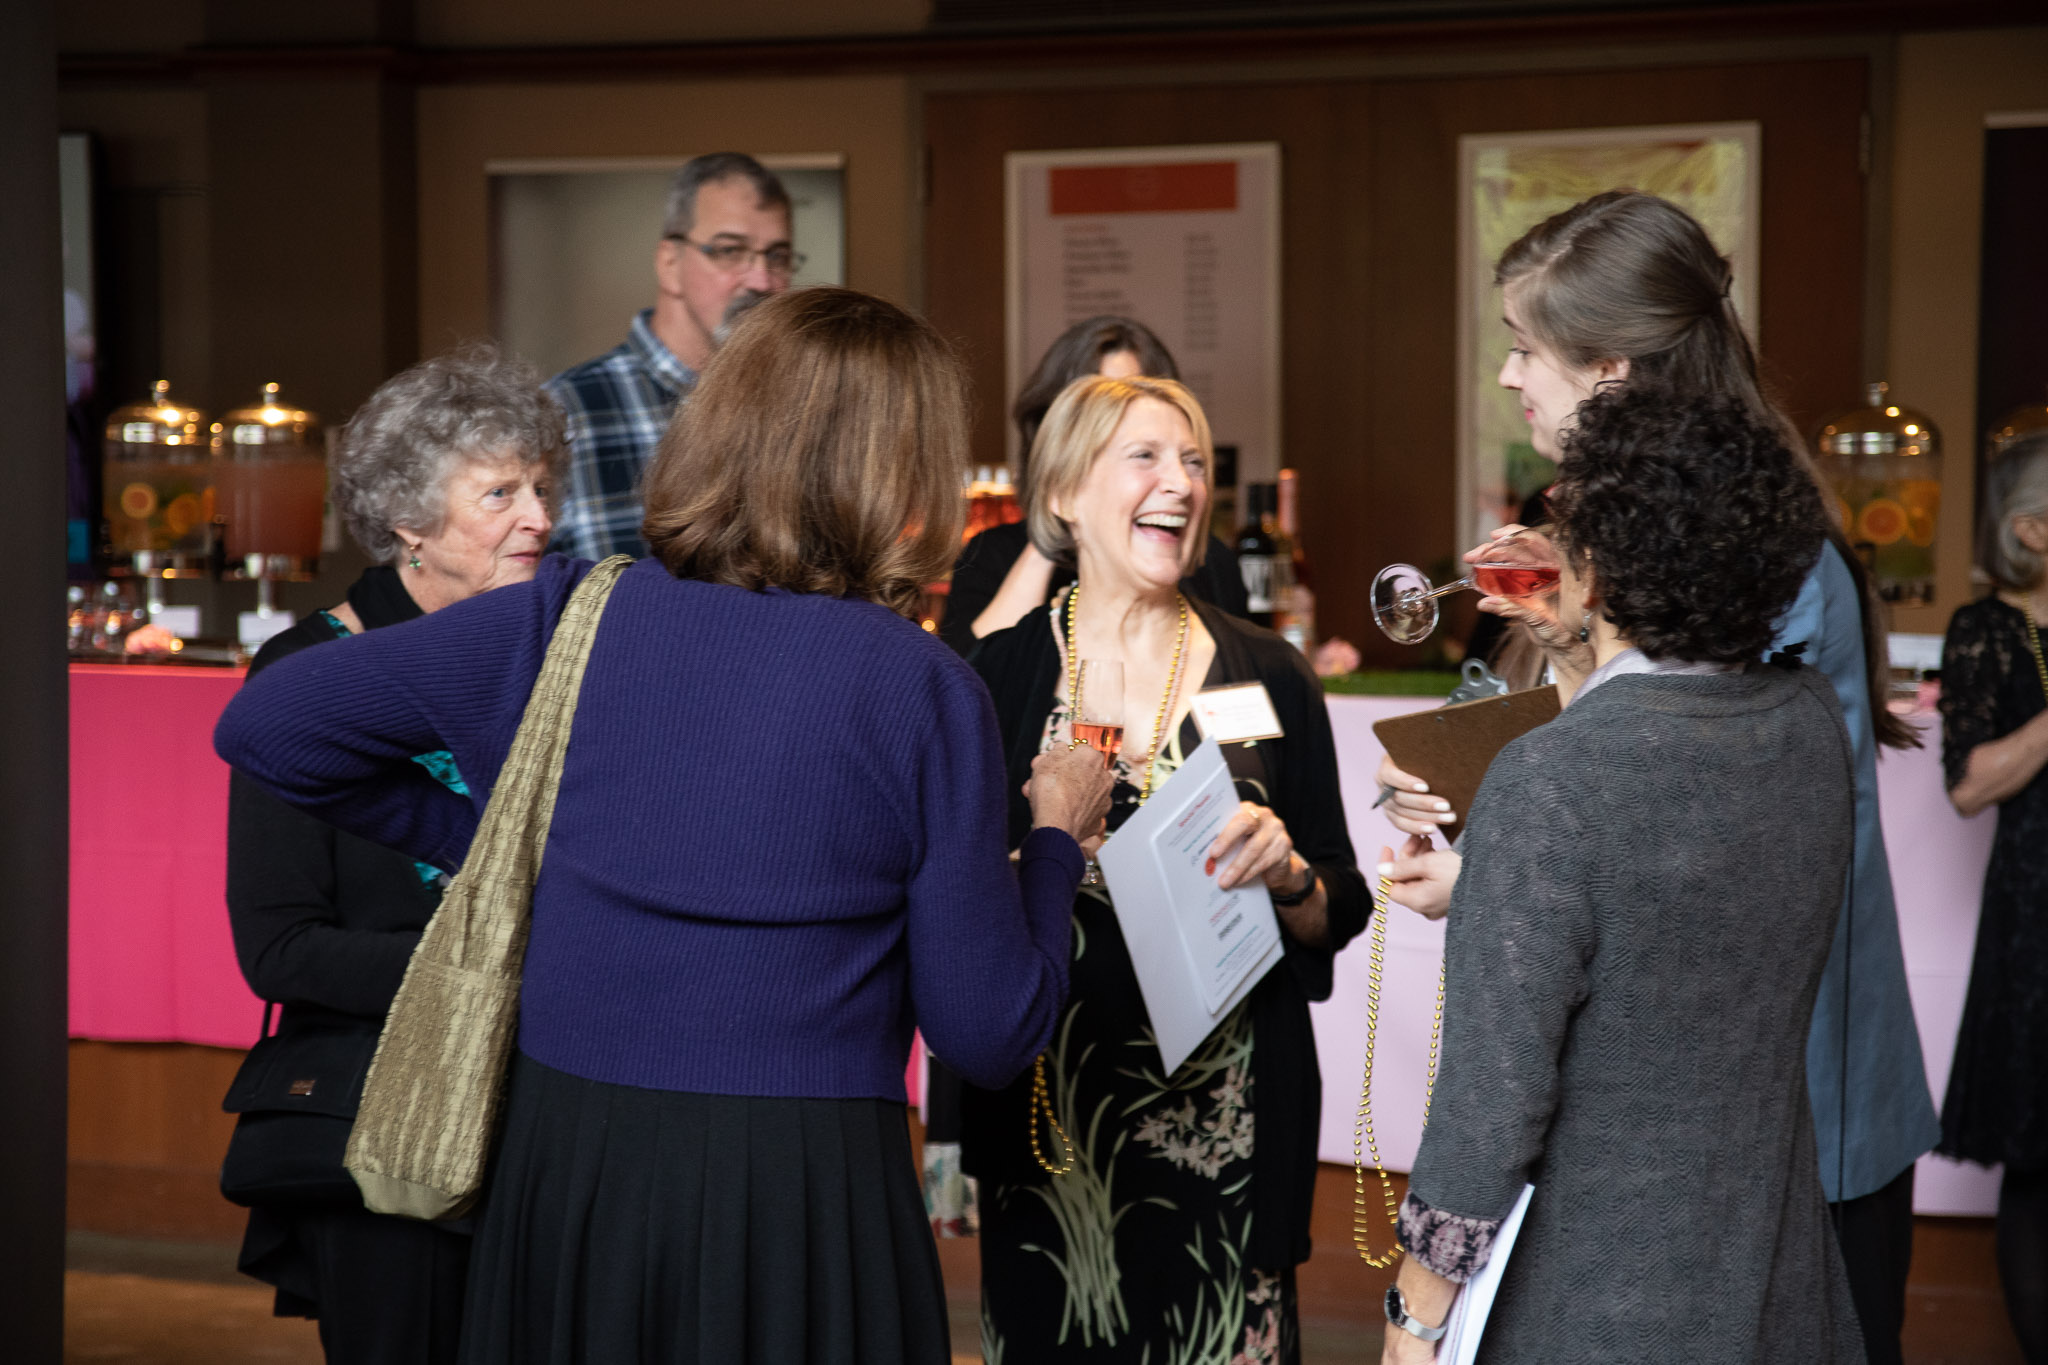 Board and community members enjoy Bill's Bash, photo by John Cornicello